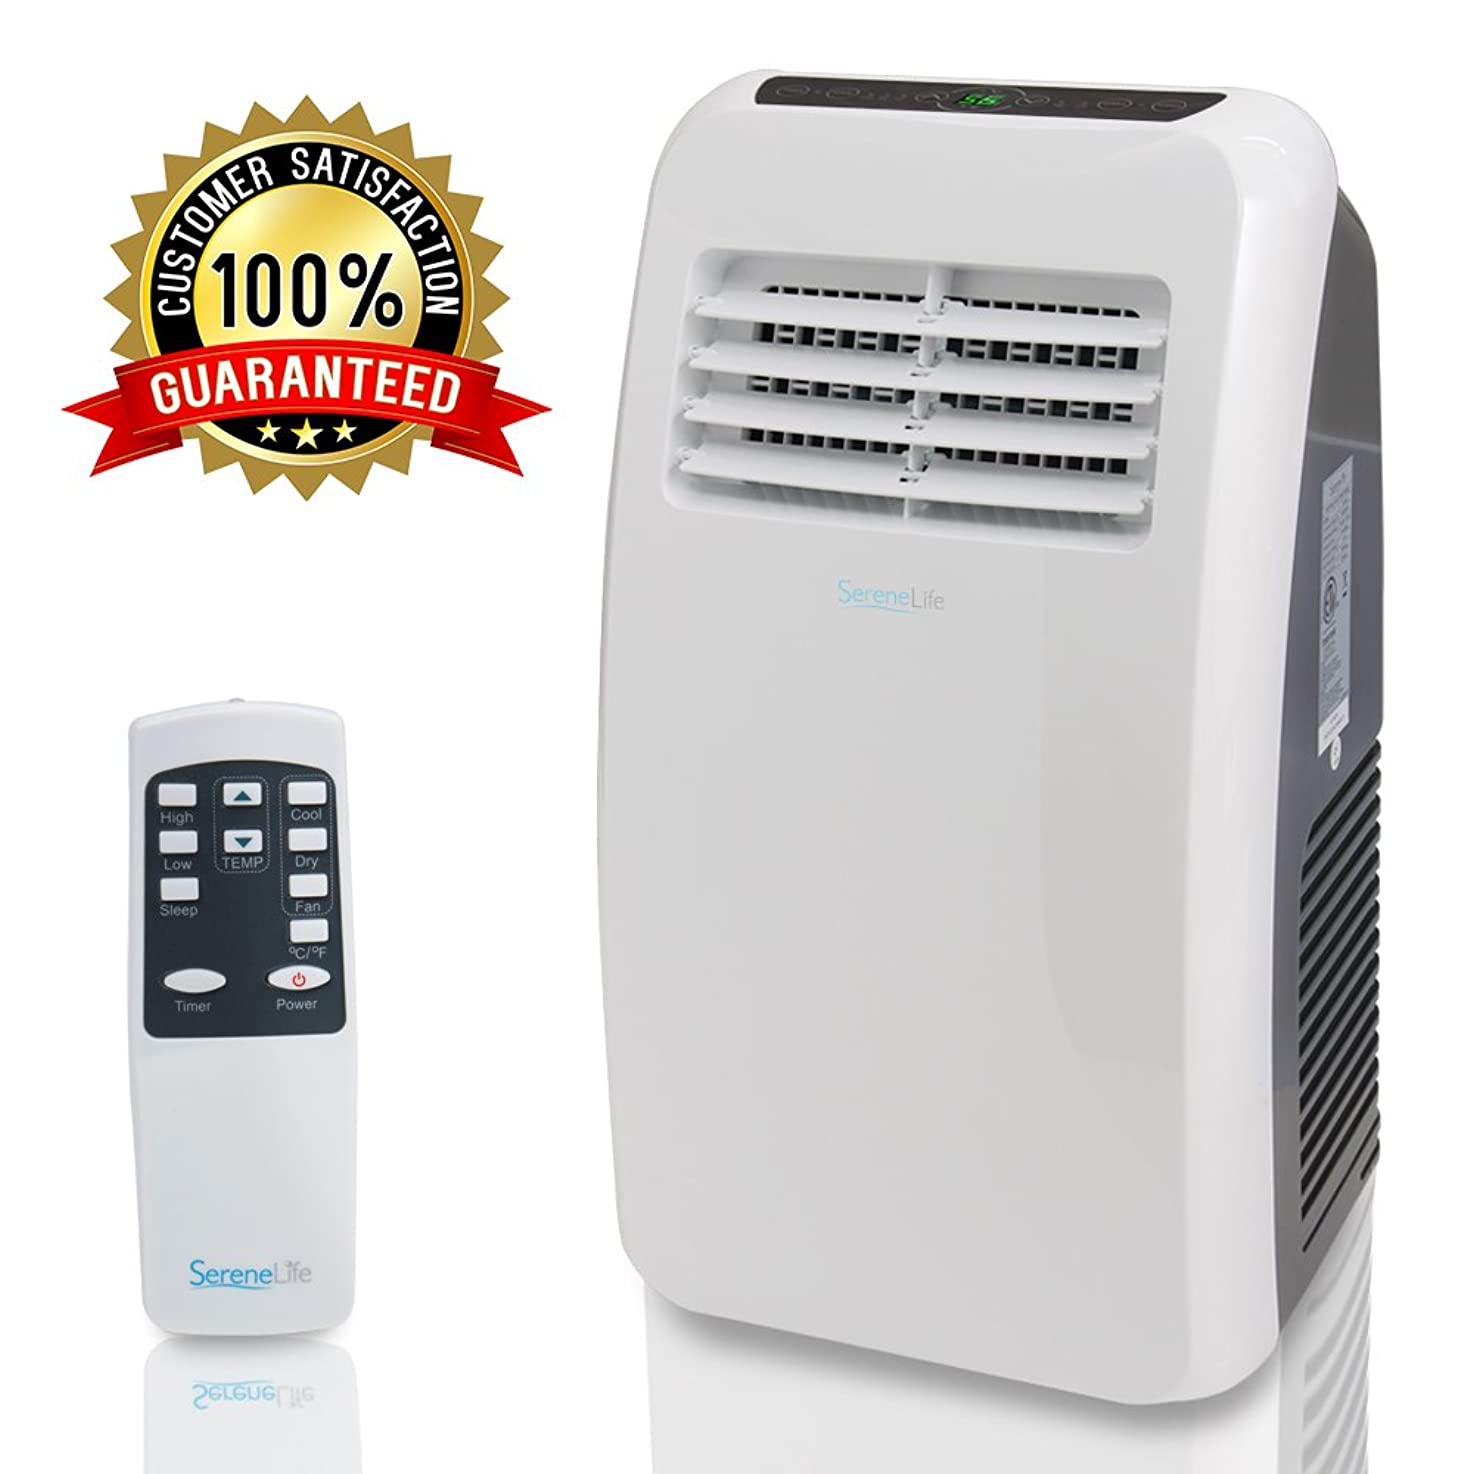 SereneLife 8,000 BTU Portable Air ir Conditioner, 3-in-1 Floor AC Unit with  Built-in Dehumidifier, Fan Modes, Remote Control, Complete Window Mount Exhaust Kit for Rooms Up to 200 Sq. Ft ewkqoofohrnbe7